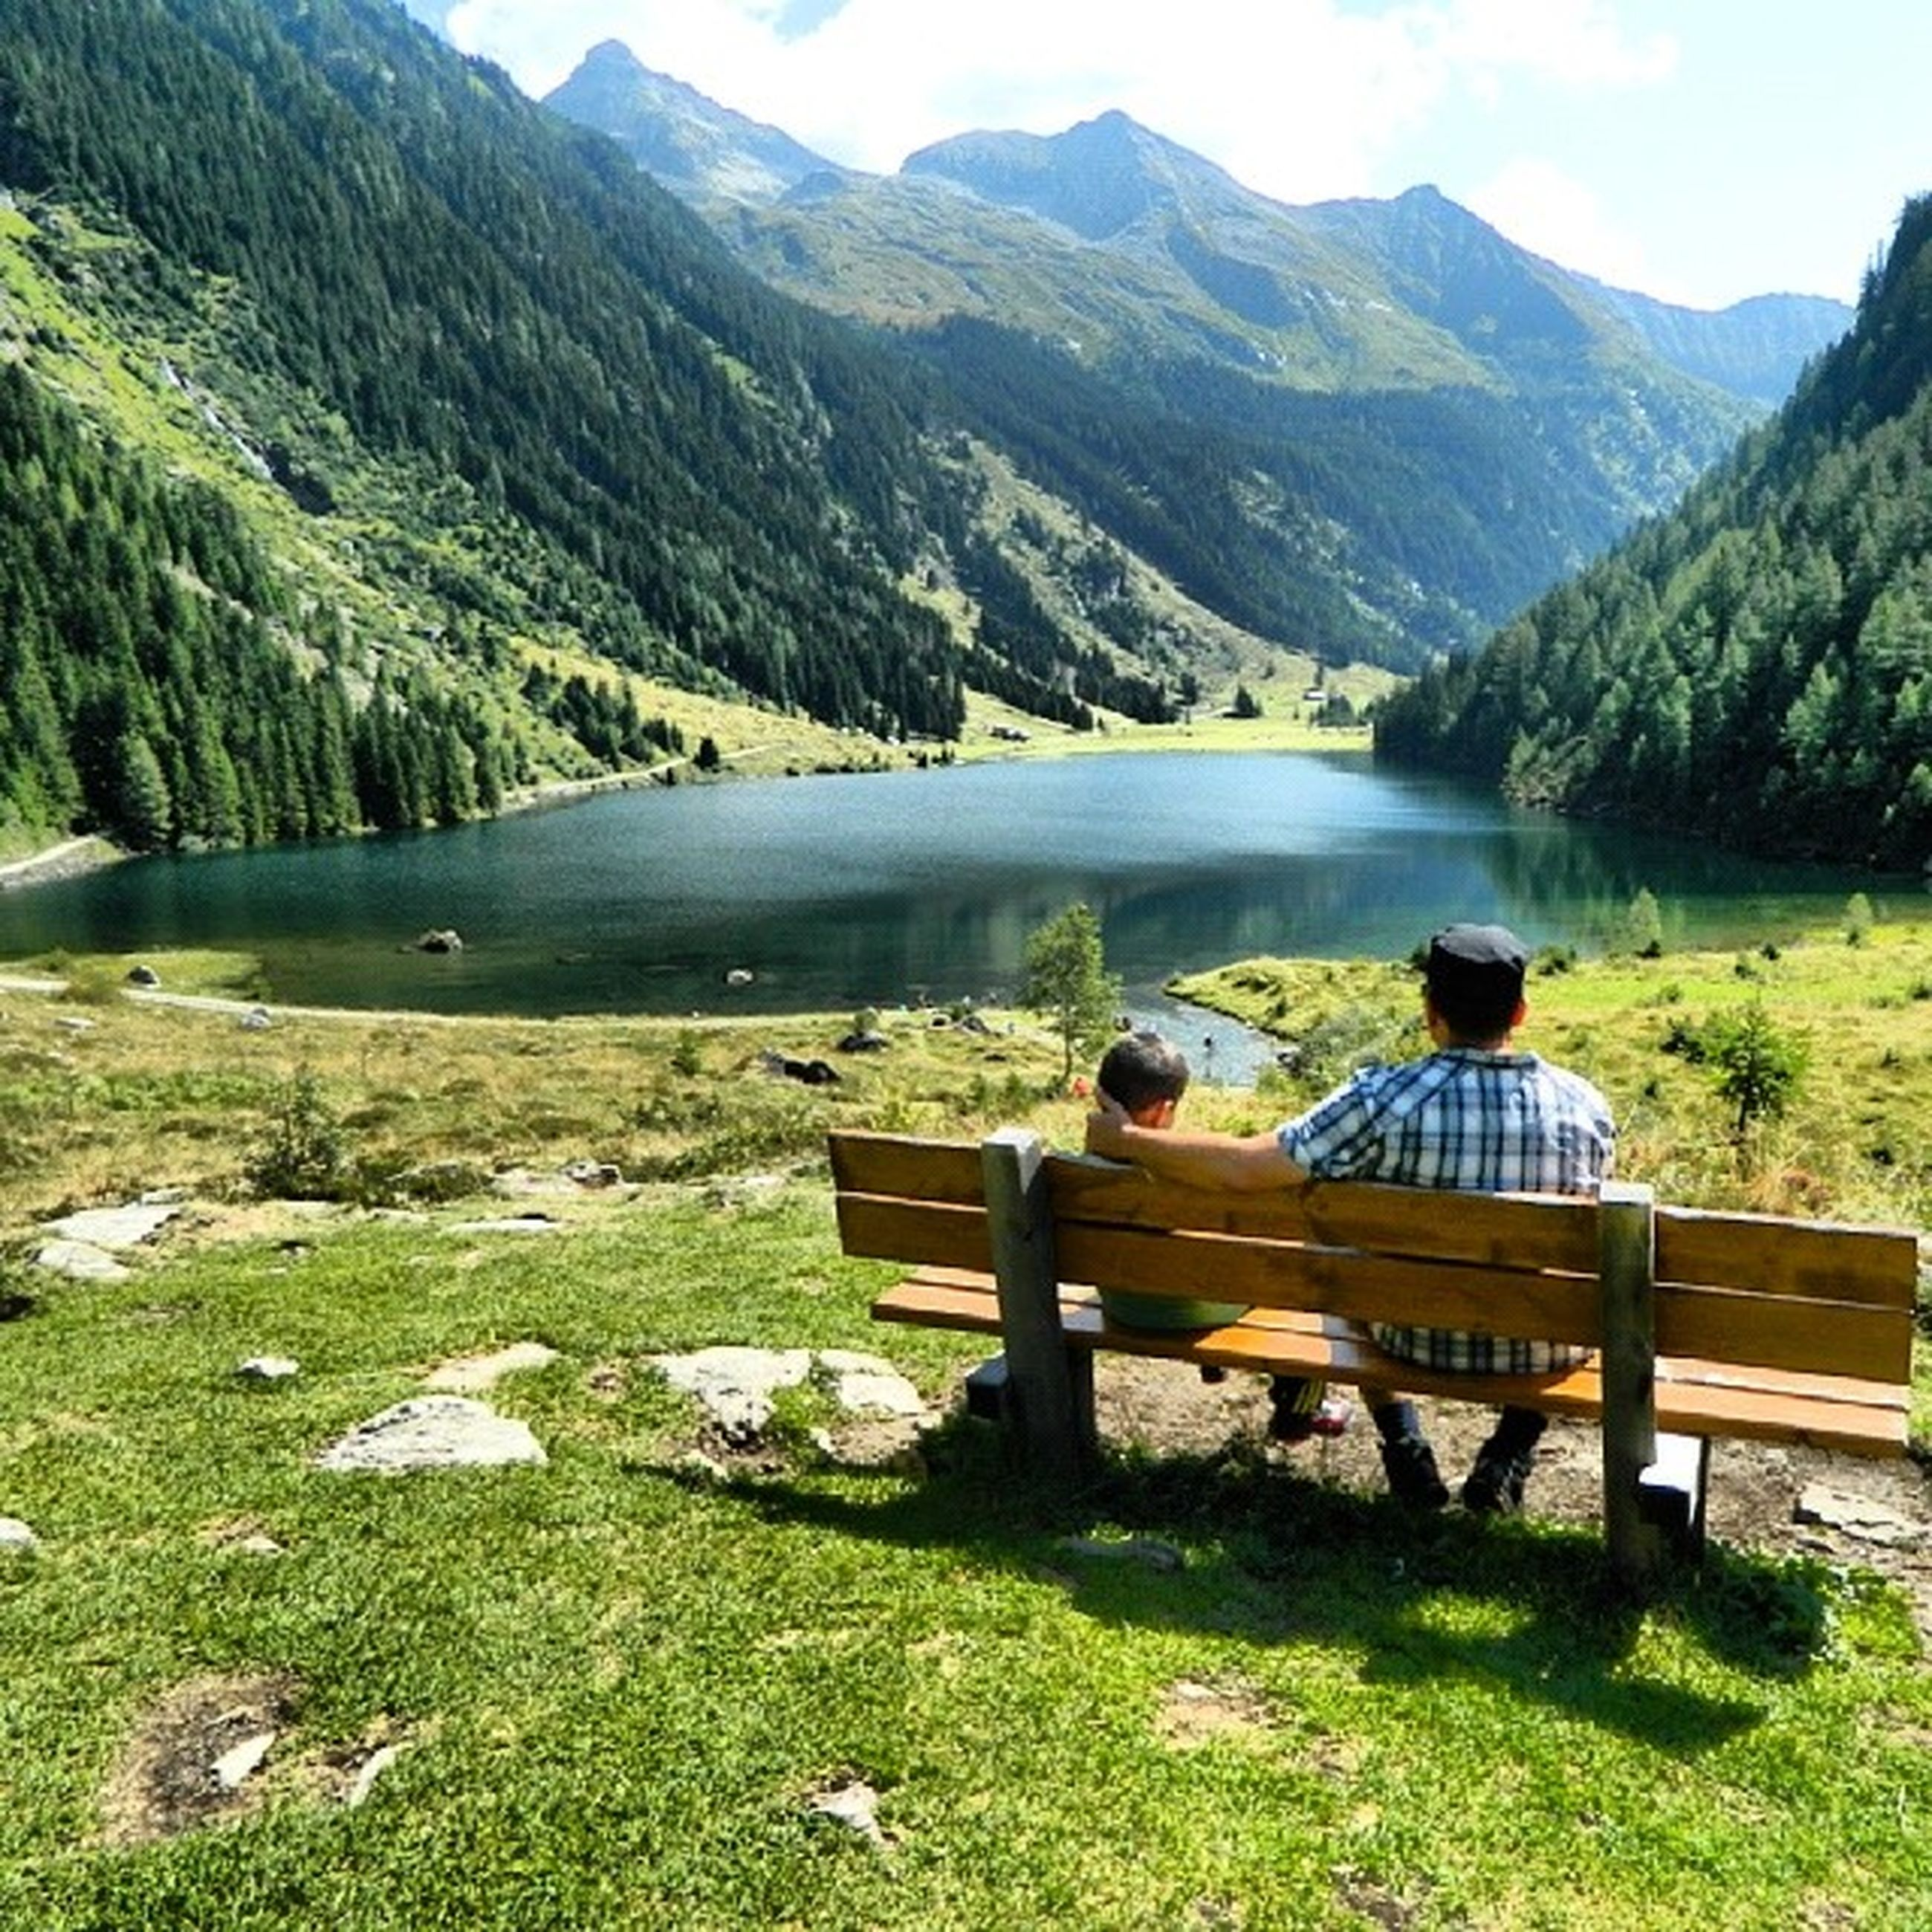 mountain, mountain range, water, tranquility, tranquil scene, lake, scenics, beauty in nature, nature, non-urban scene, idyllic, landscape, river, day, relaxation, bench, tree, outdoors, remote, sitting